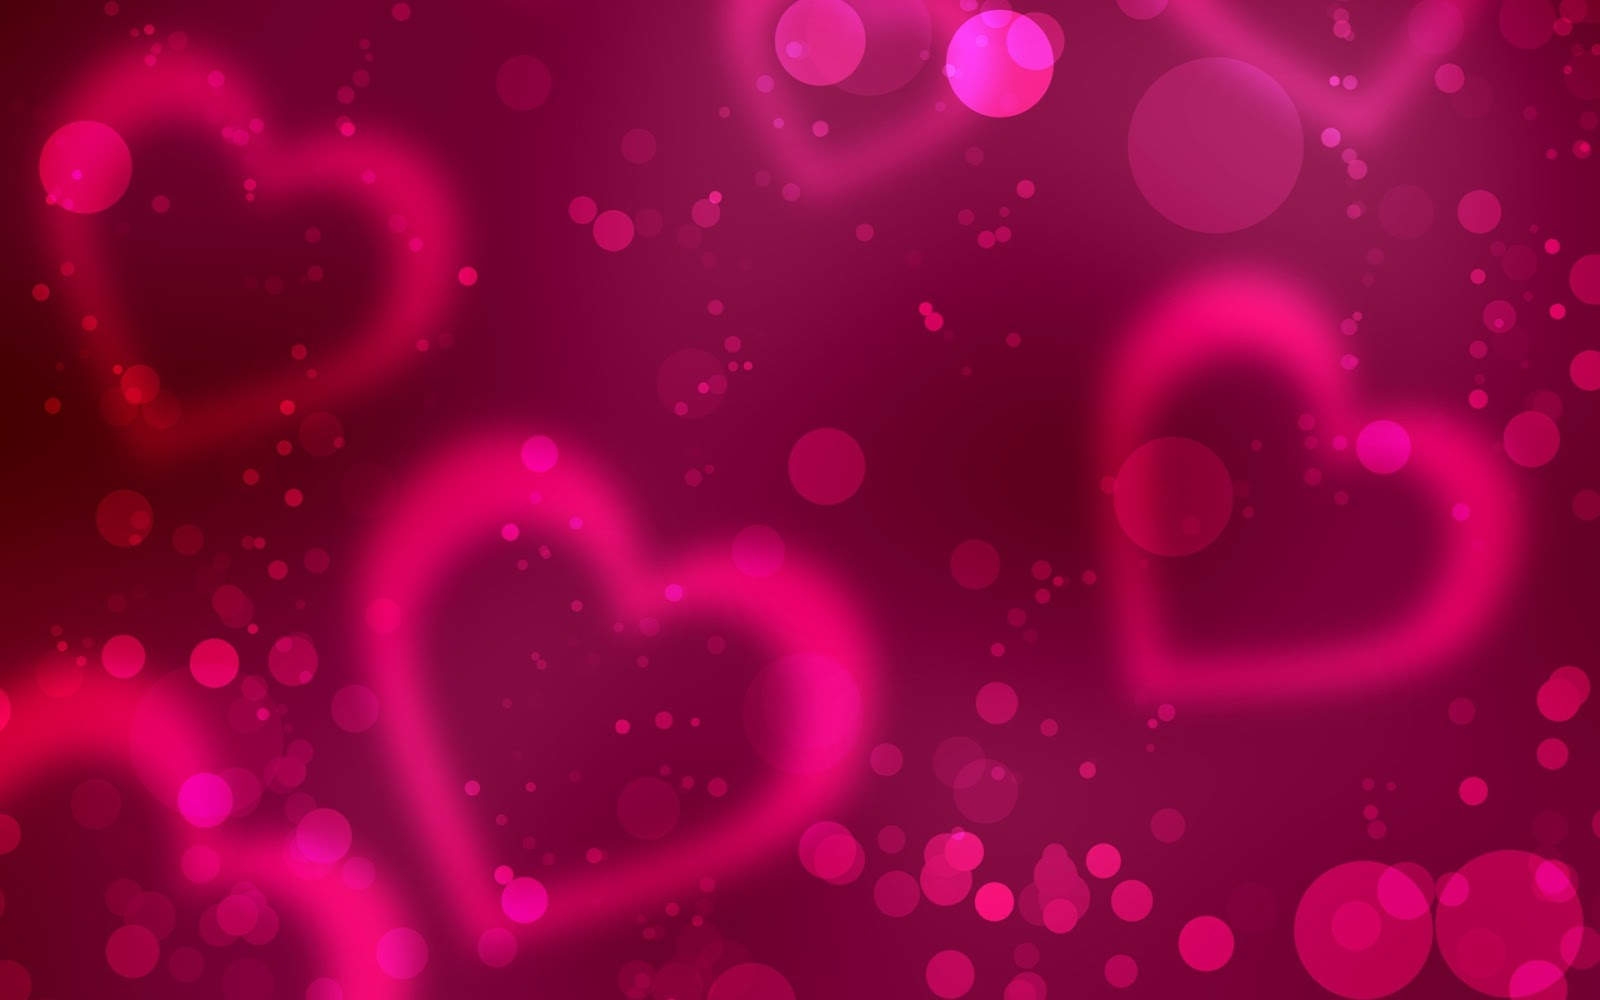 Love Wallpapers Thimes : Love Wallpaper Backgrounds 19152 1600x1000 px ...